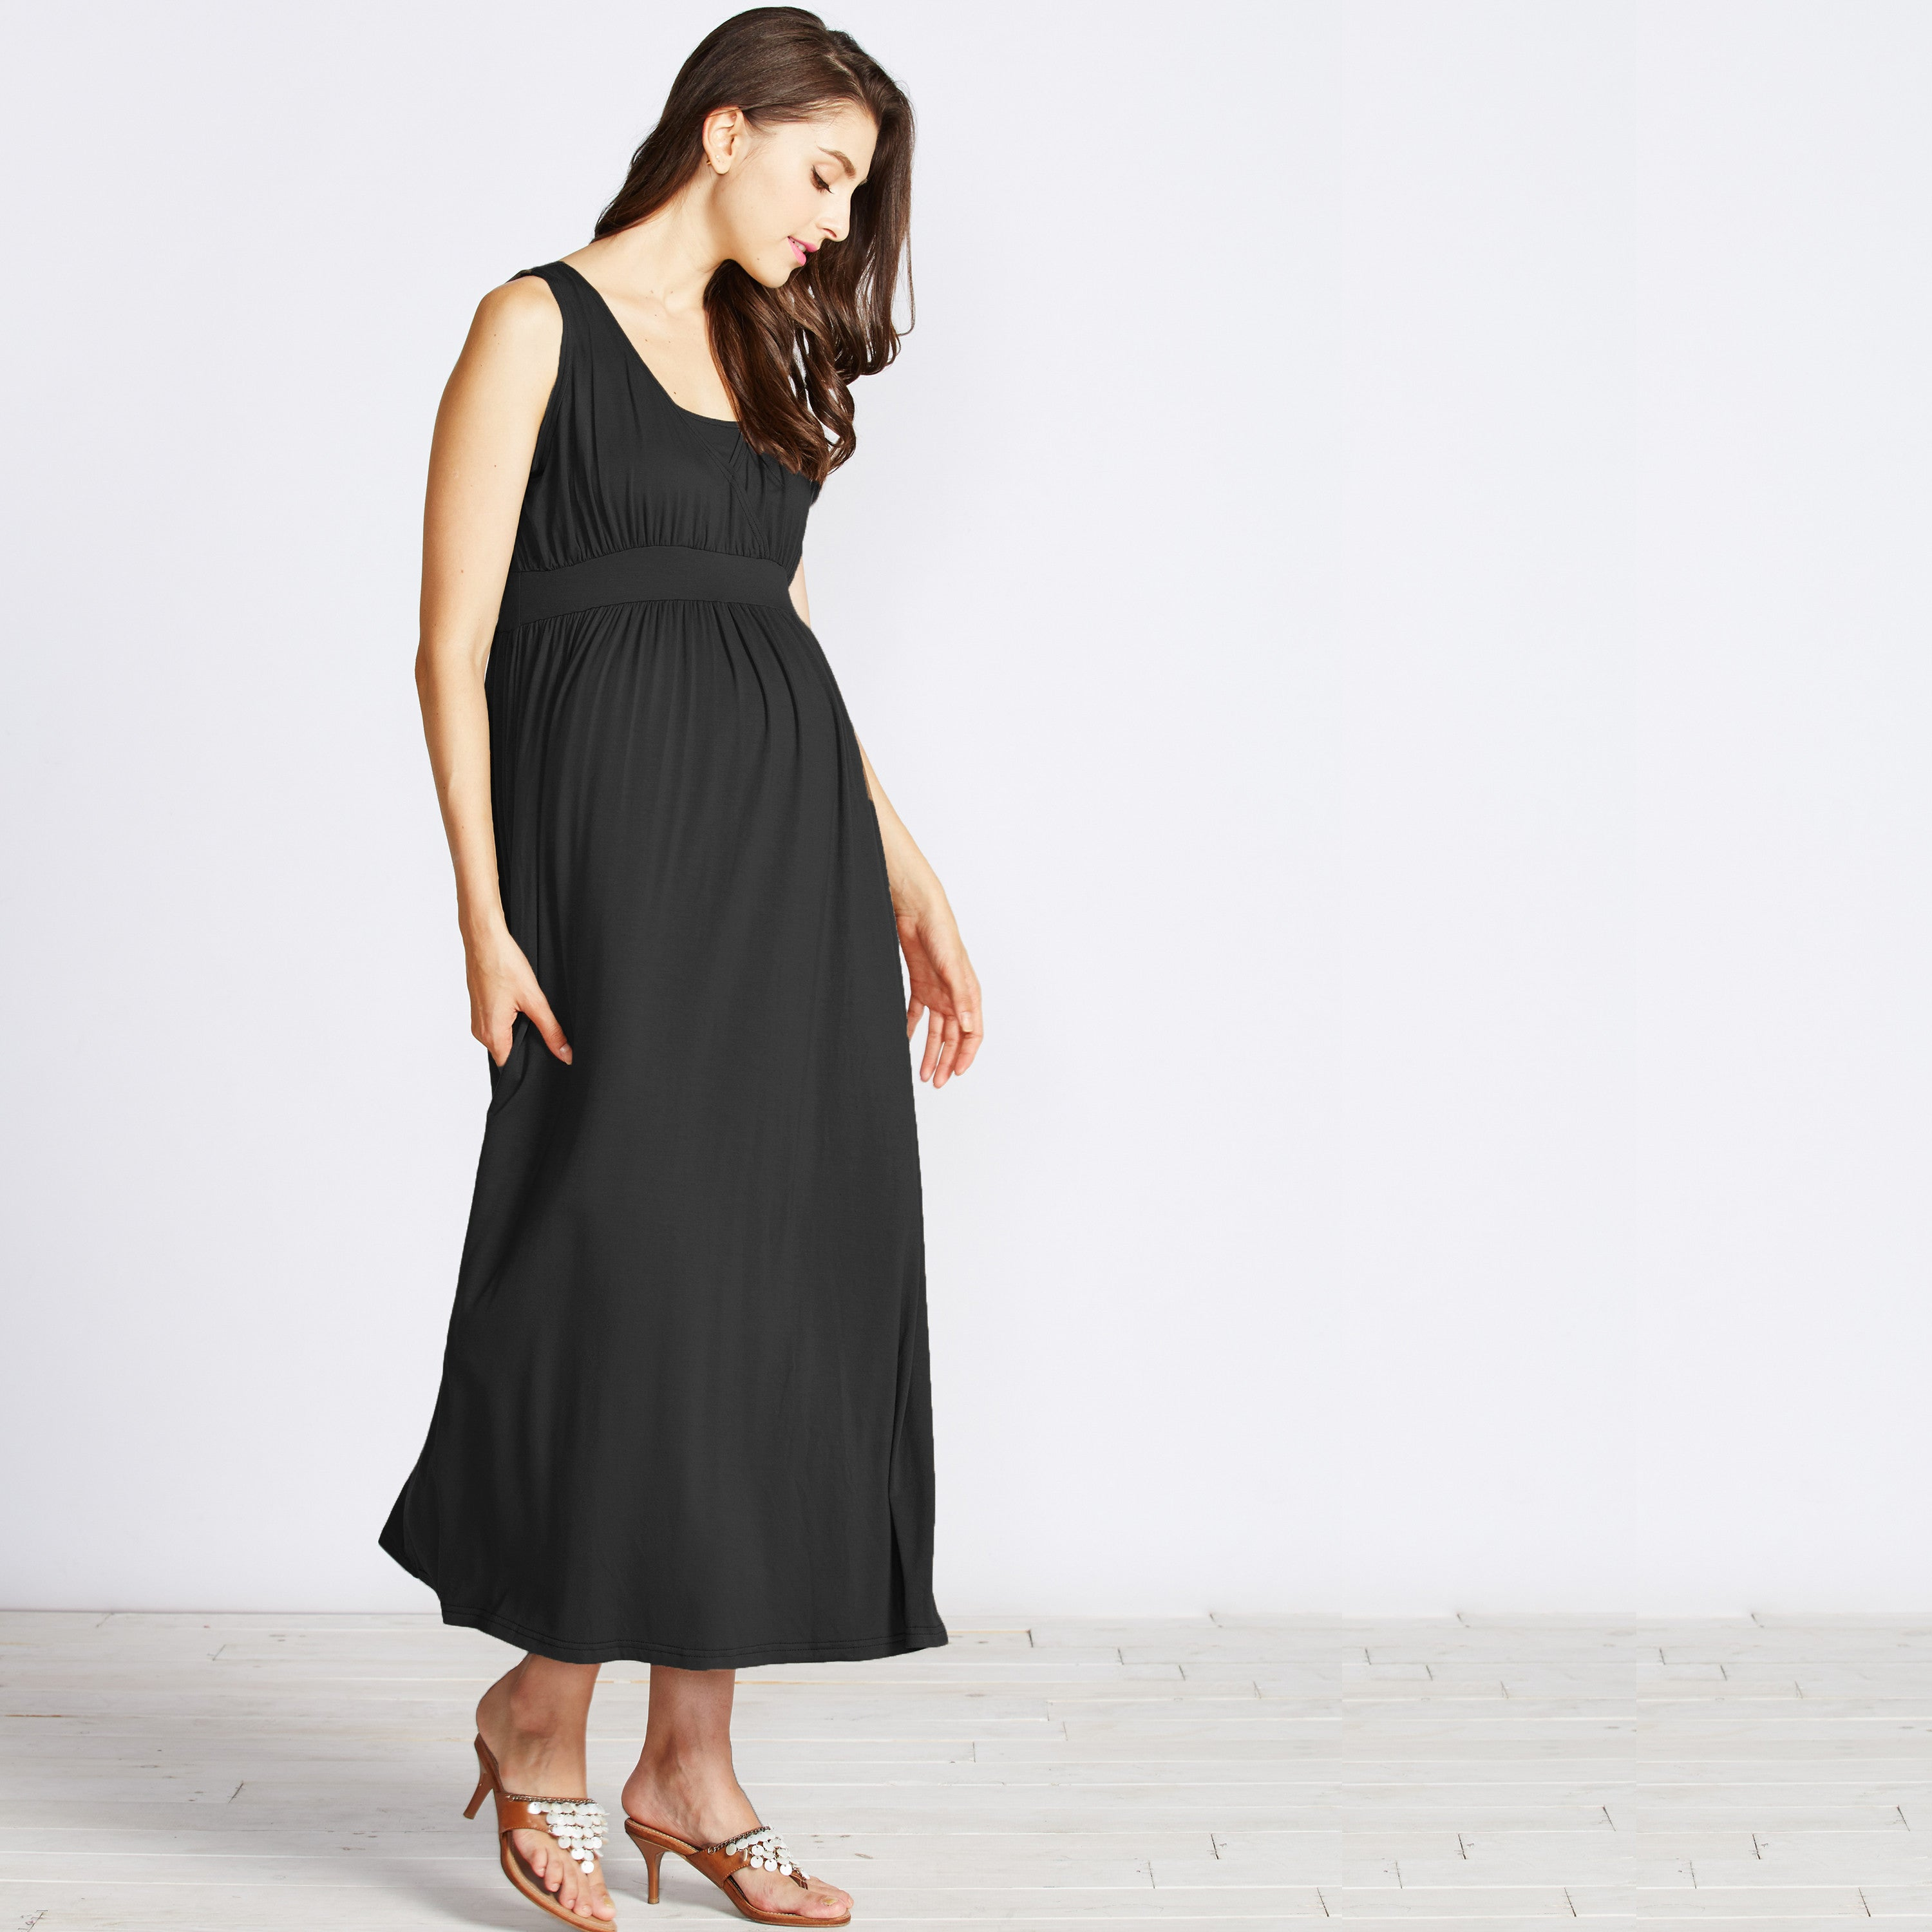 nursing maxi dress black